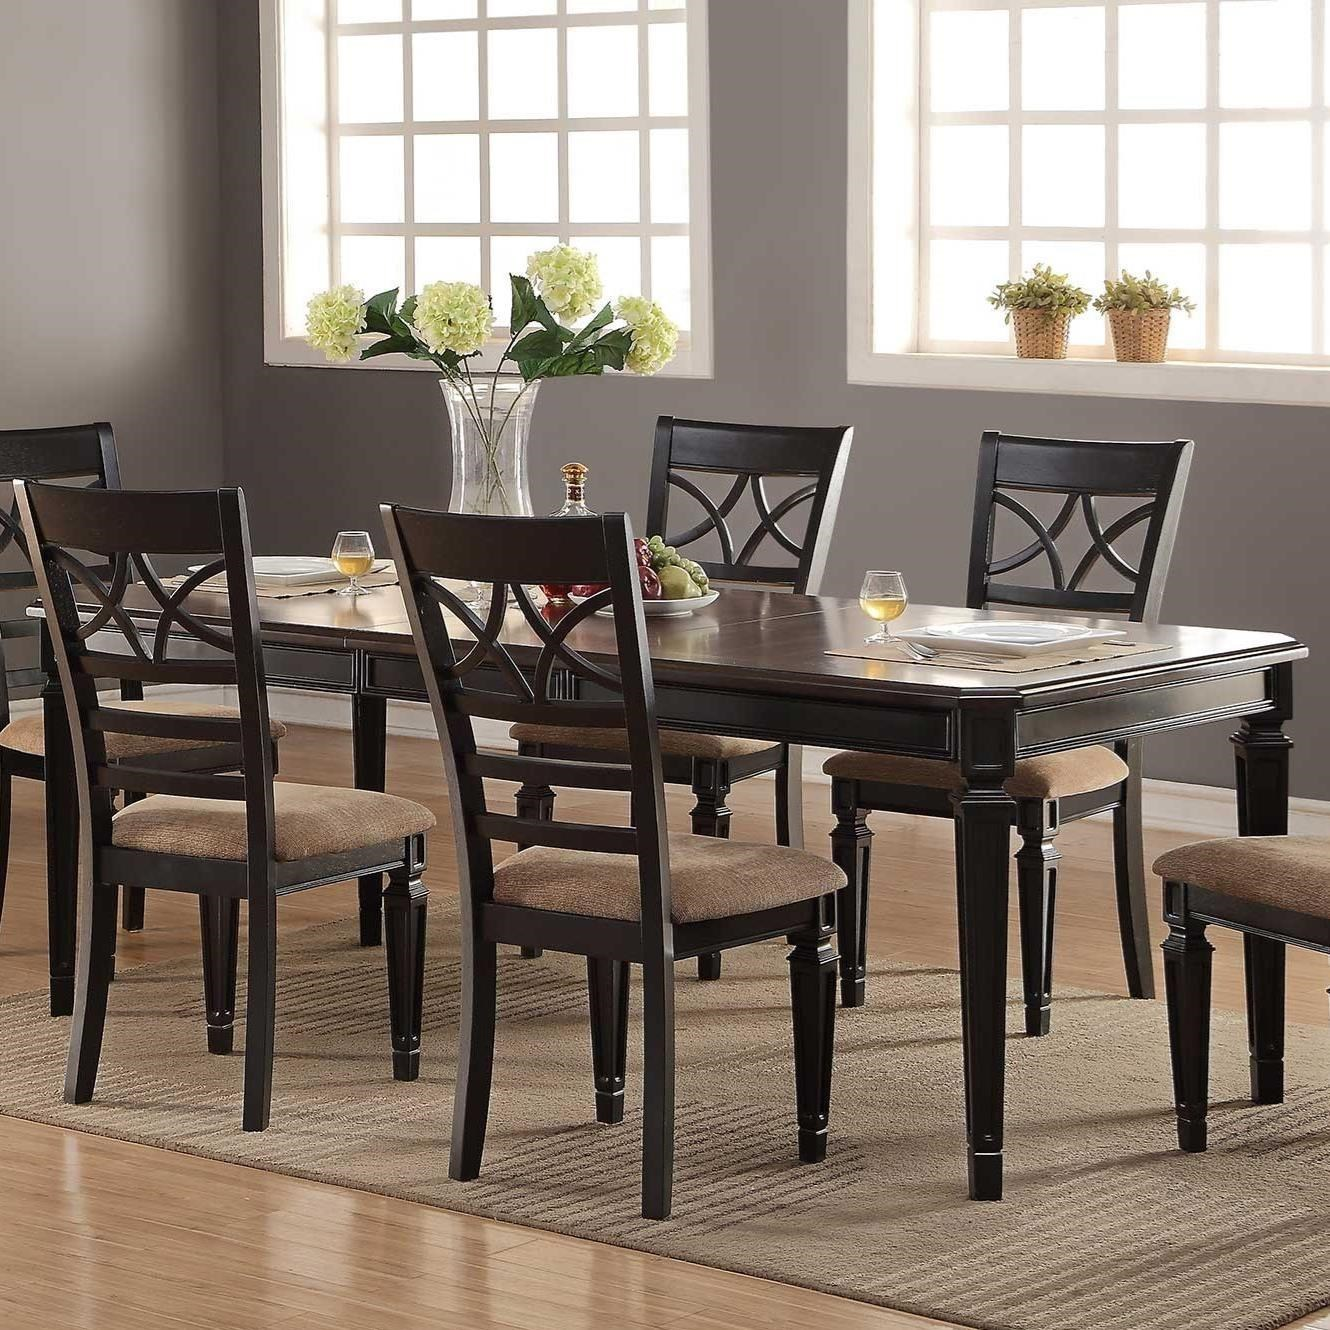 Arlington Leg Table by Winners Only at Simply Home by Lindy's